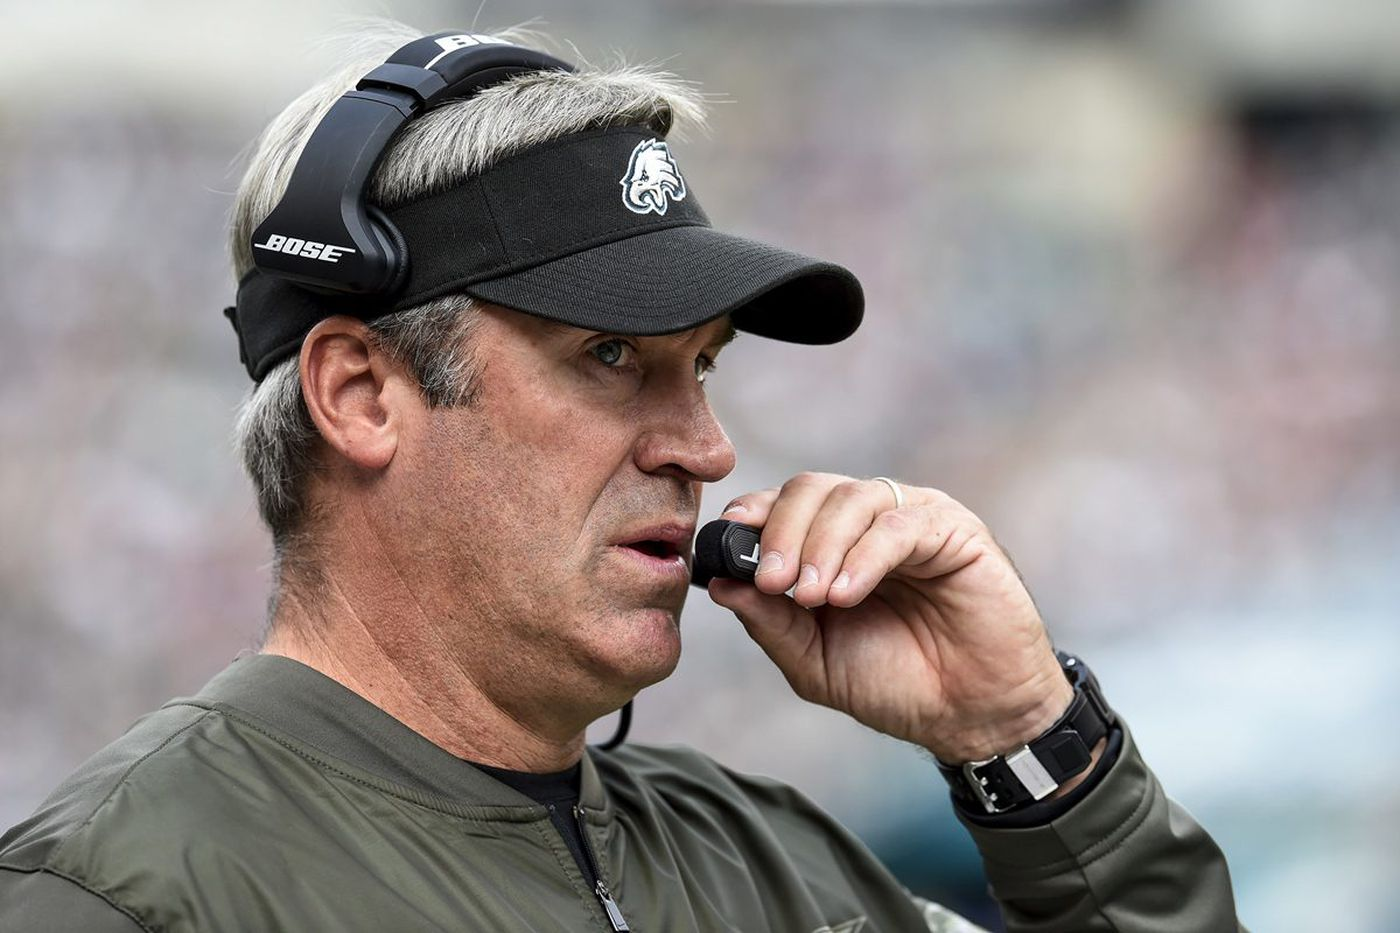 ESPN writer revisits Doug Pederson criticism, but ex-NFL executive not backing away